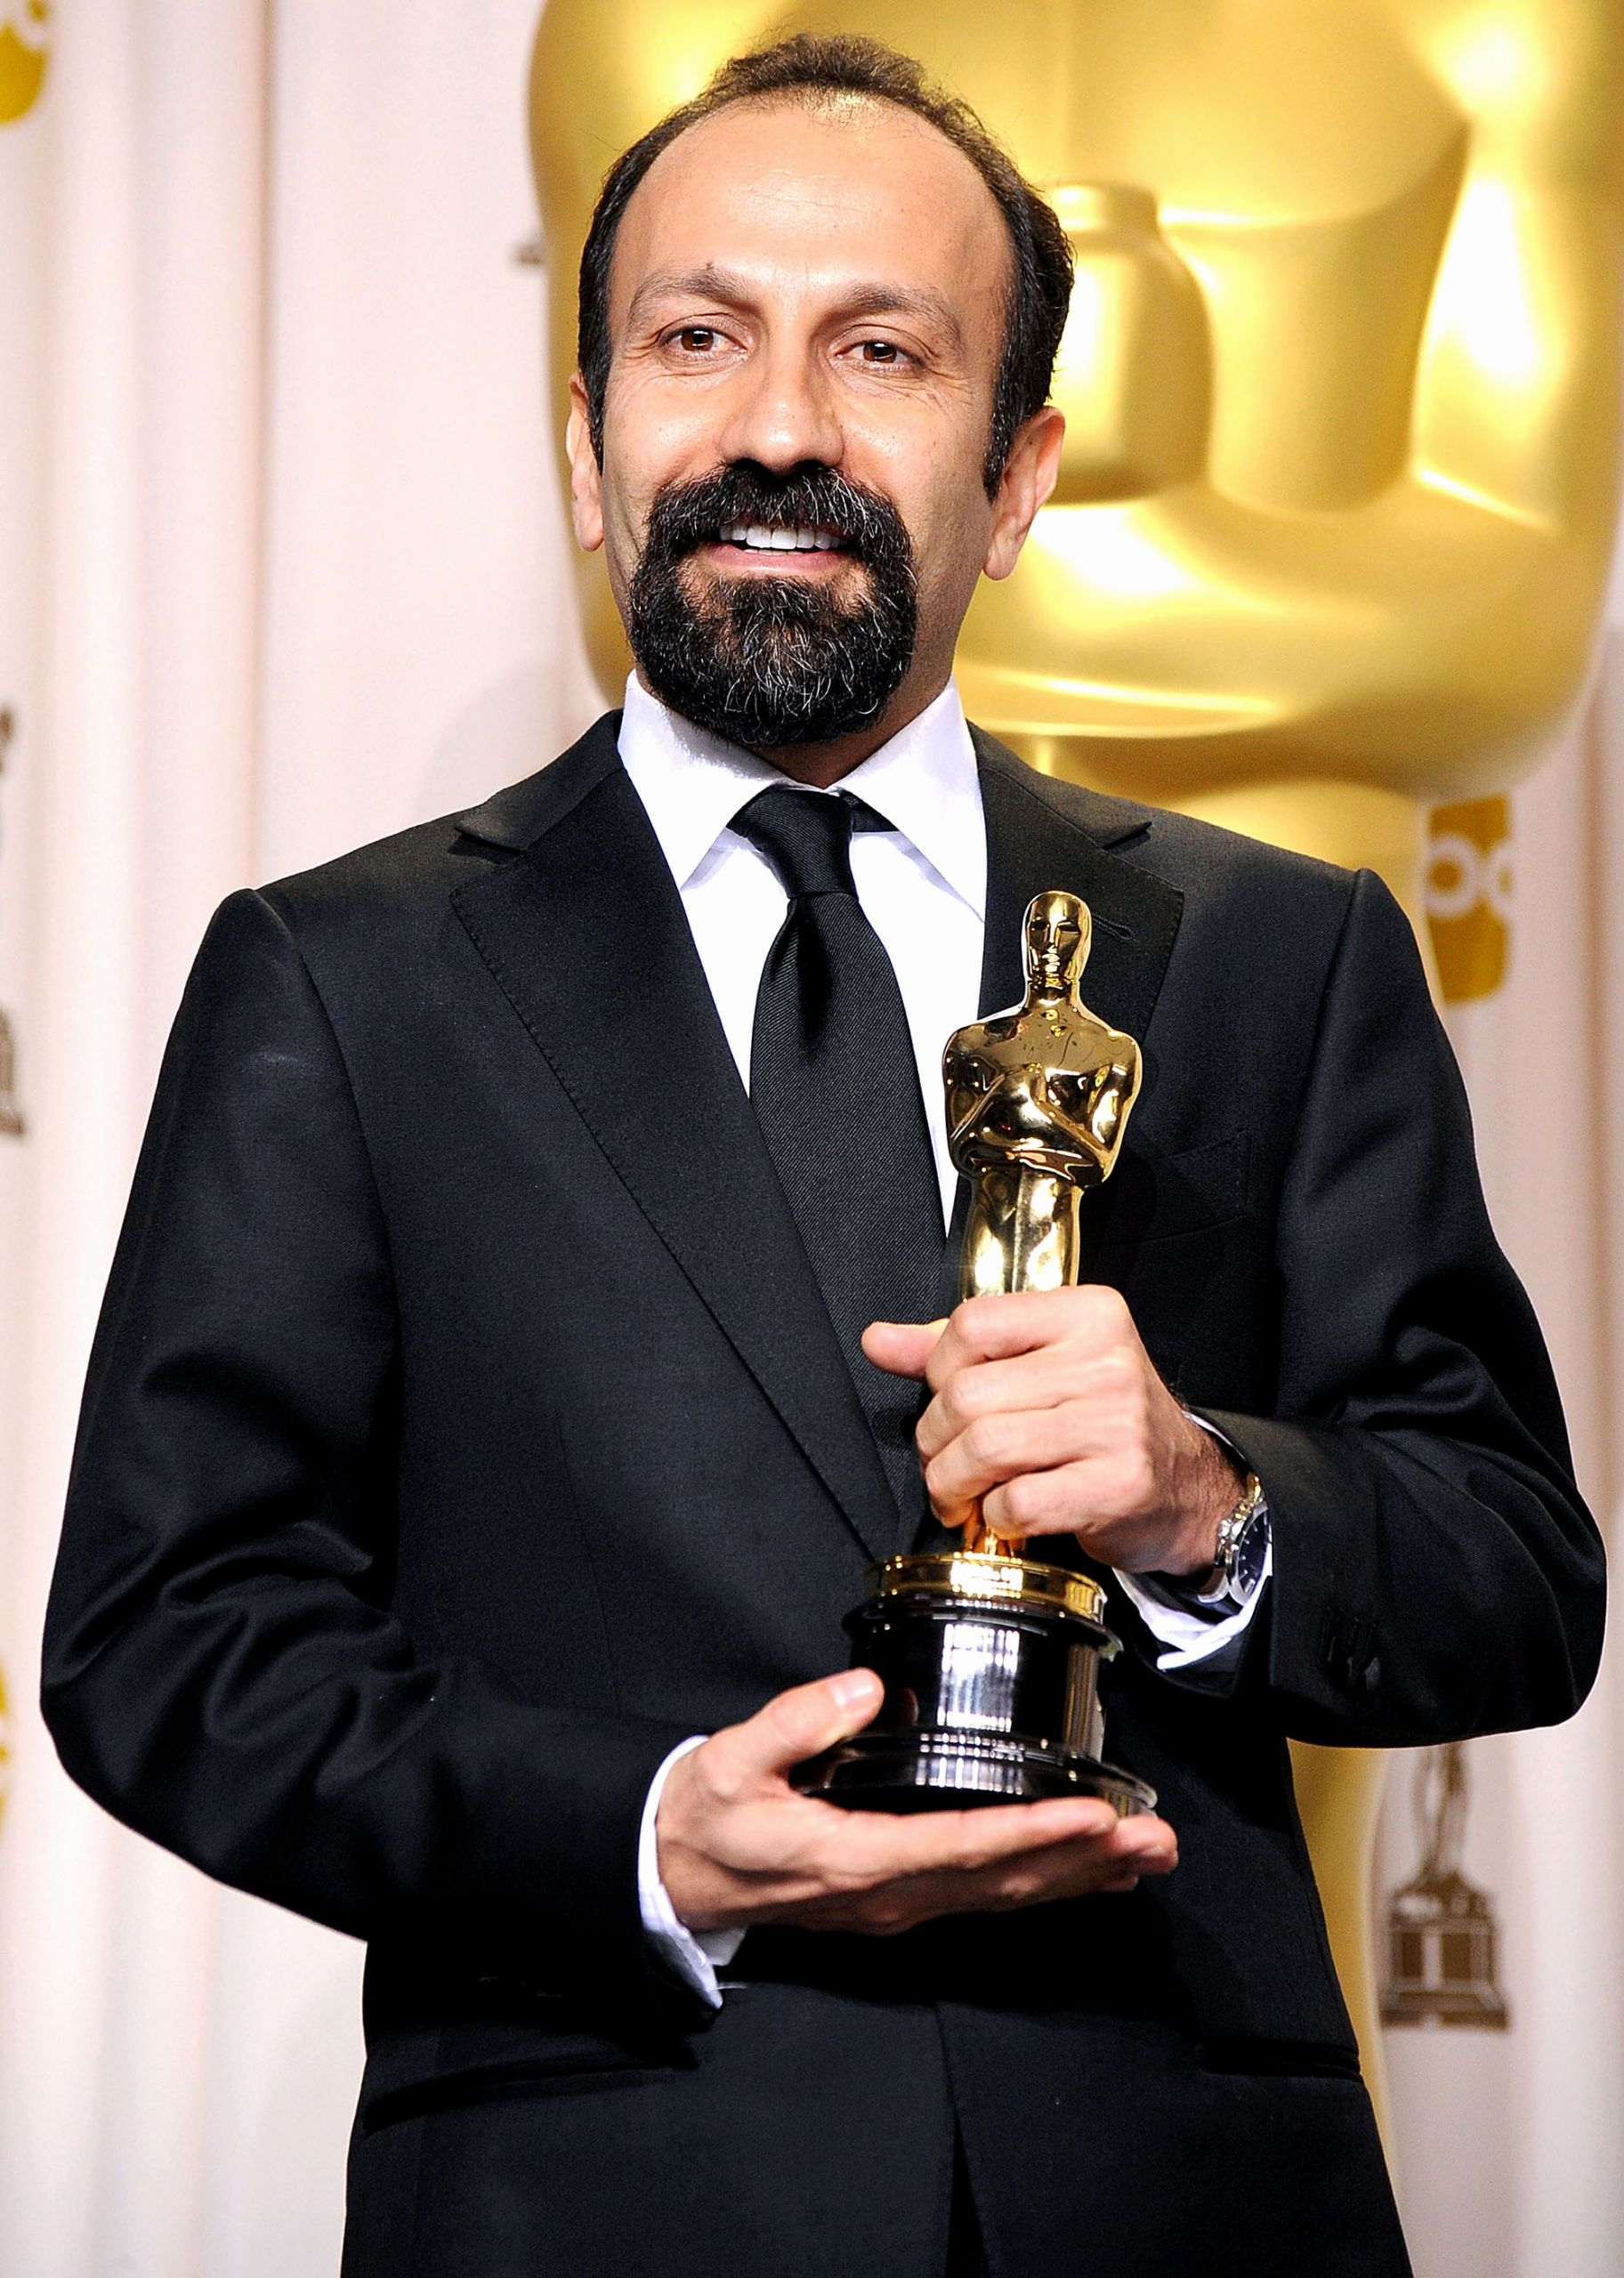 Salesman Of the Month Award Luxury Oscars 2017 the Salesman Wins Best foreign Language